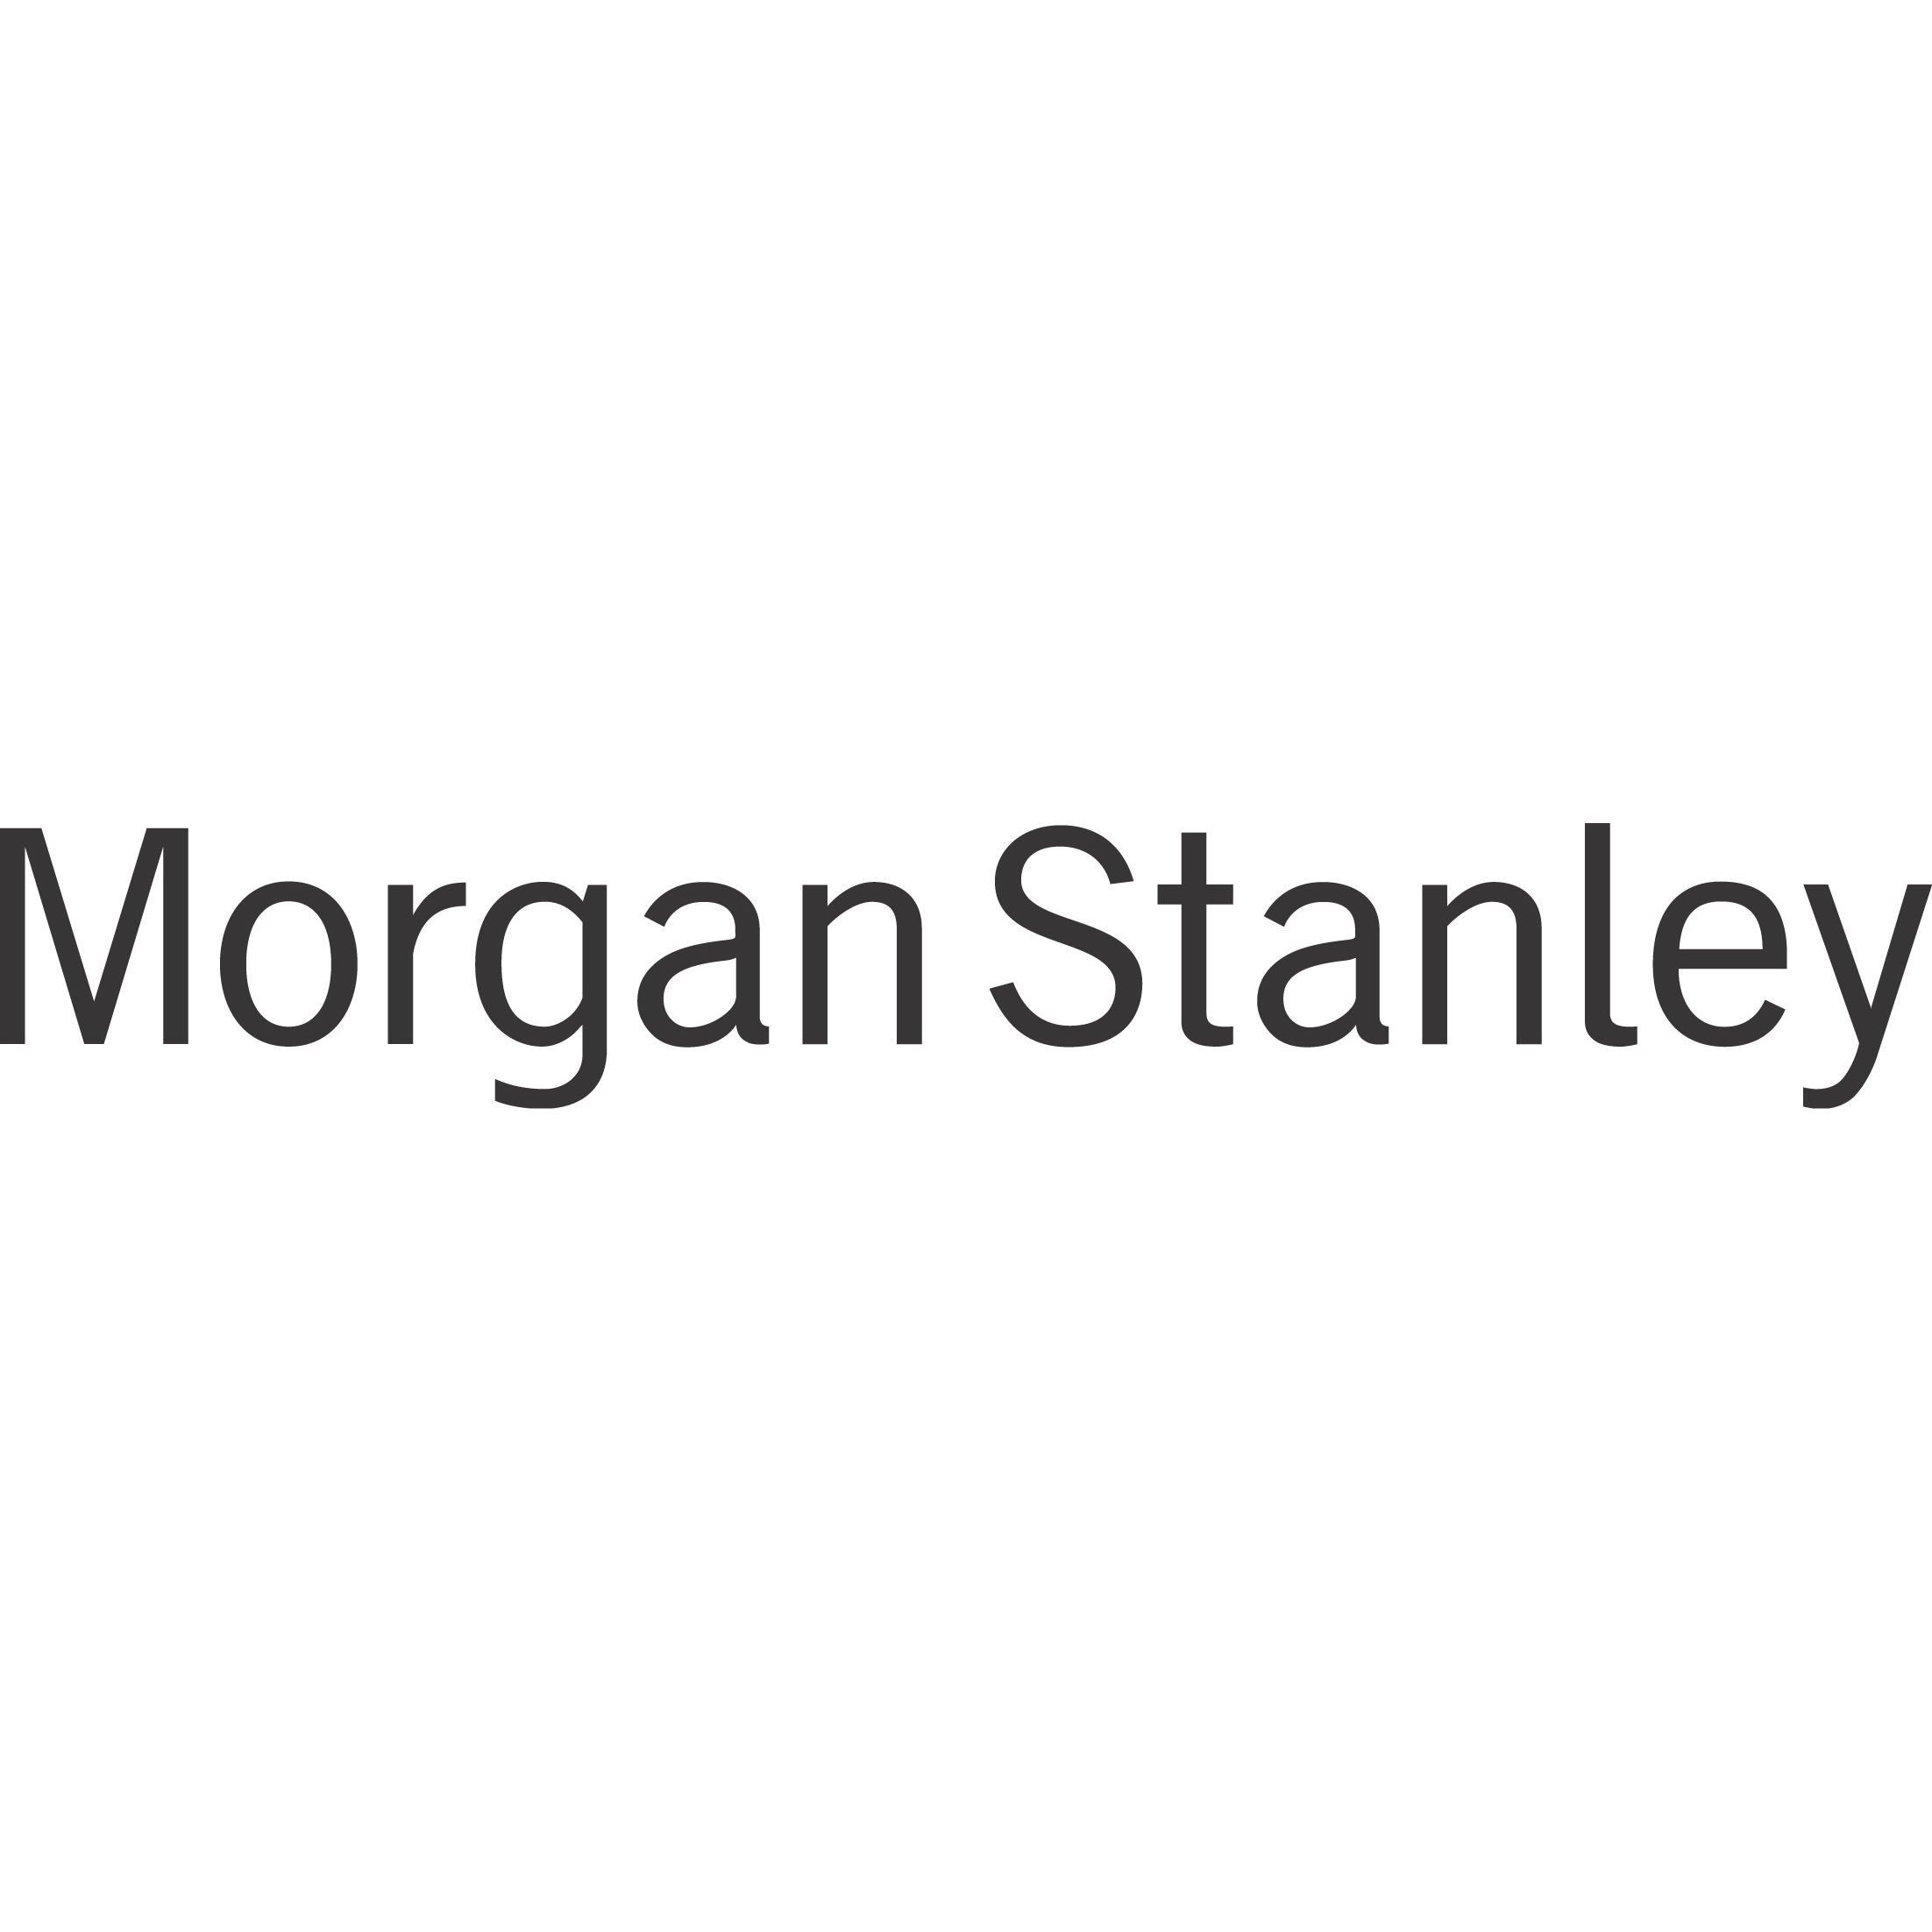 Morgan Stanley | Financial Advisor in Baltimore,Maryland